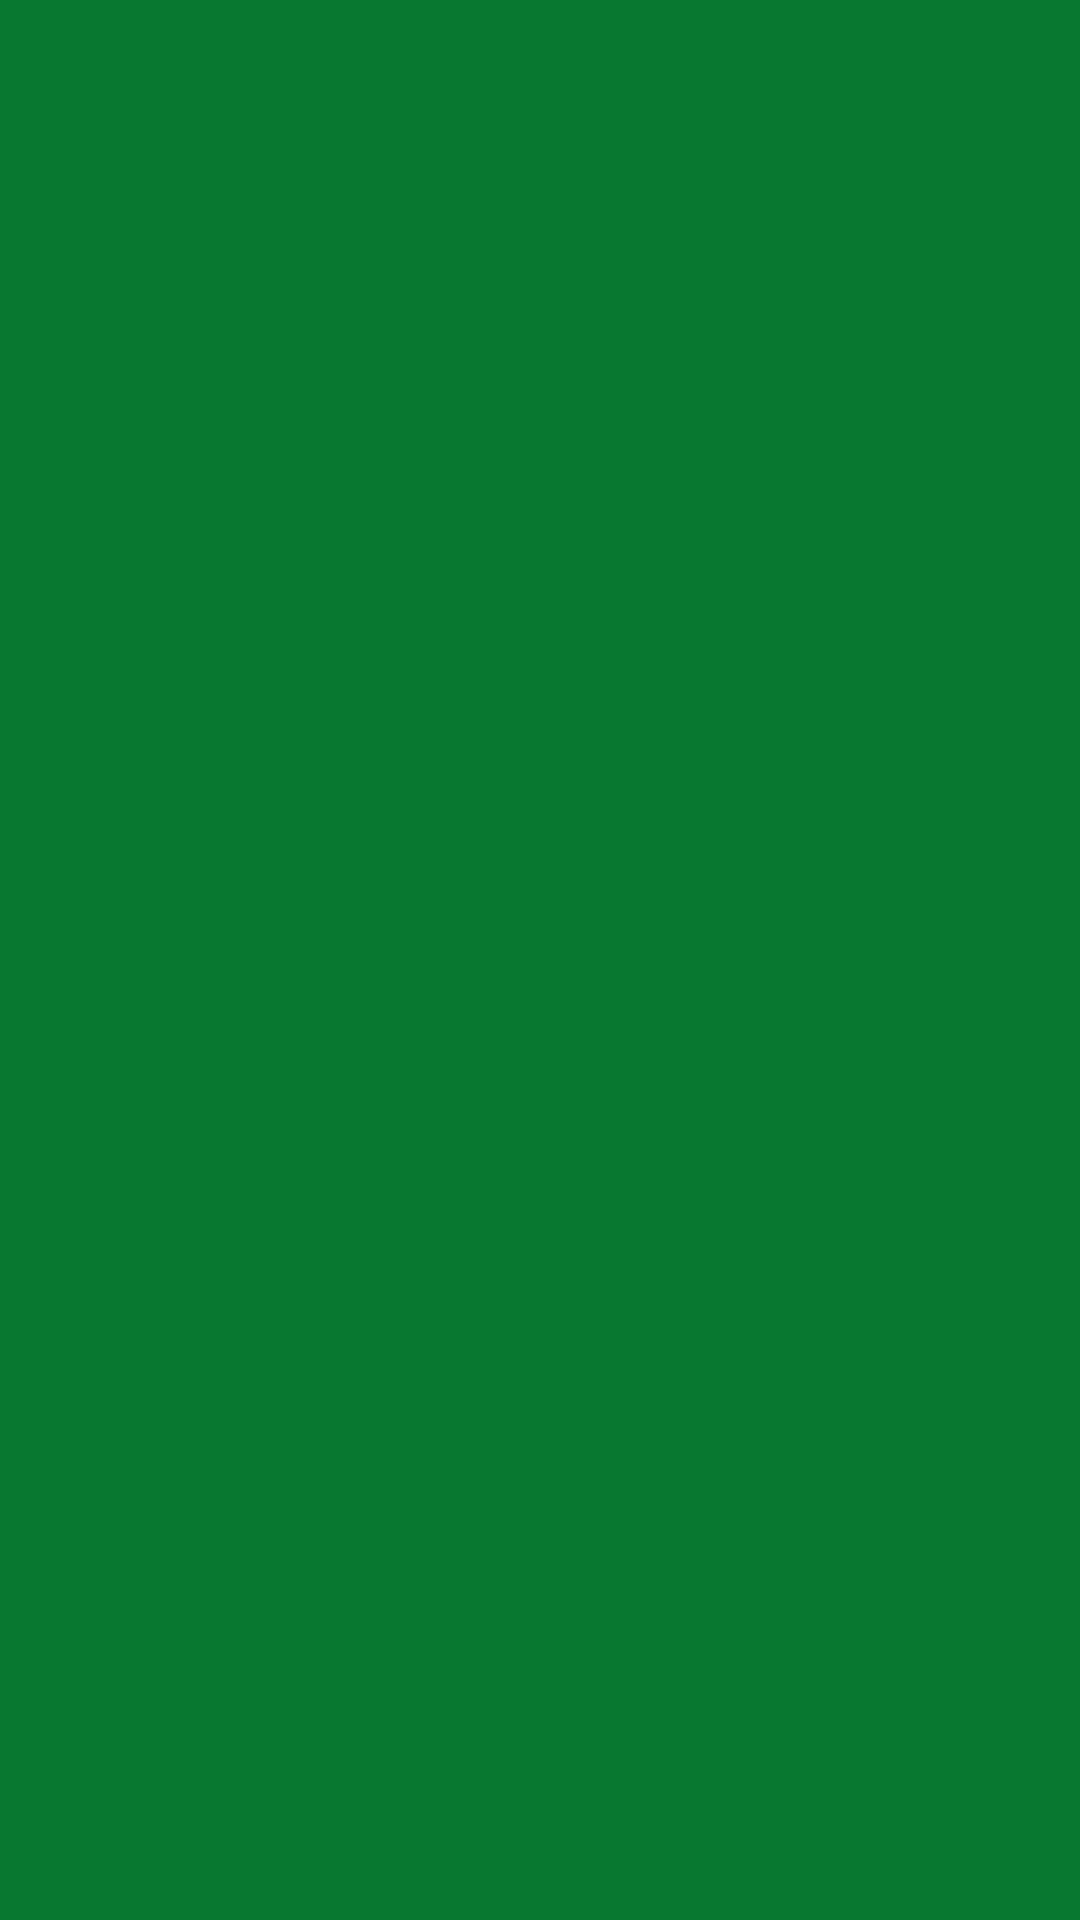 1080x1920 La Salle Green Solid Color Background